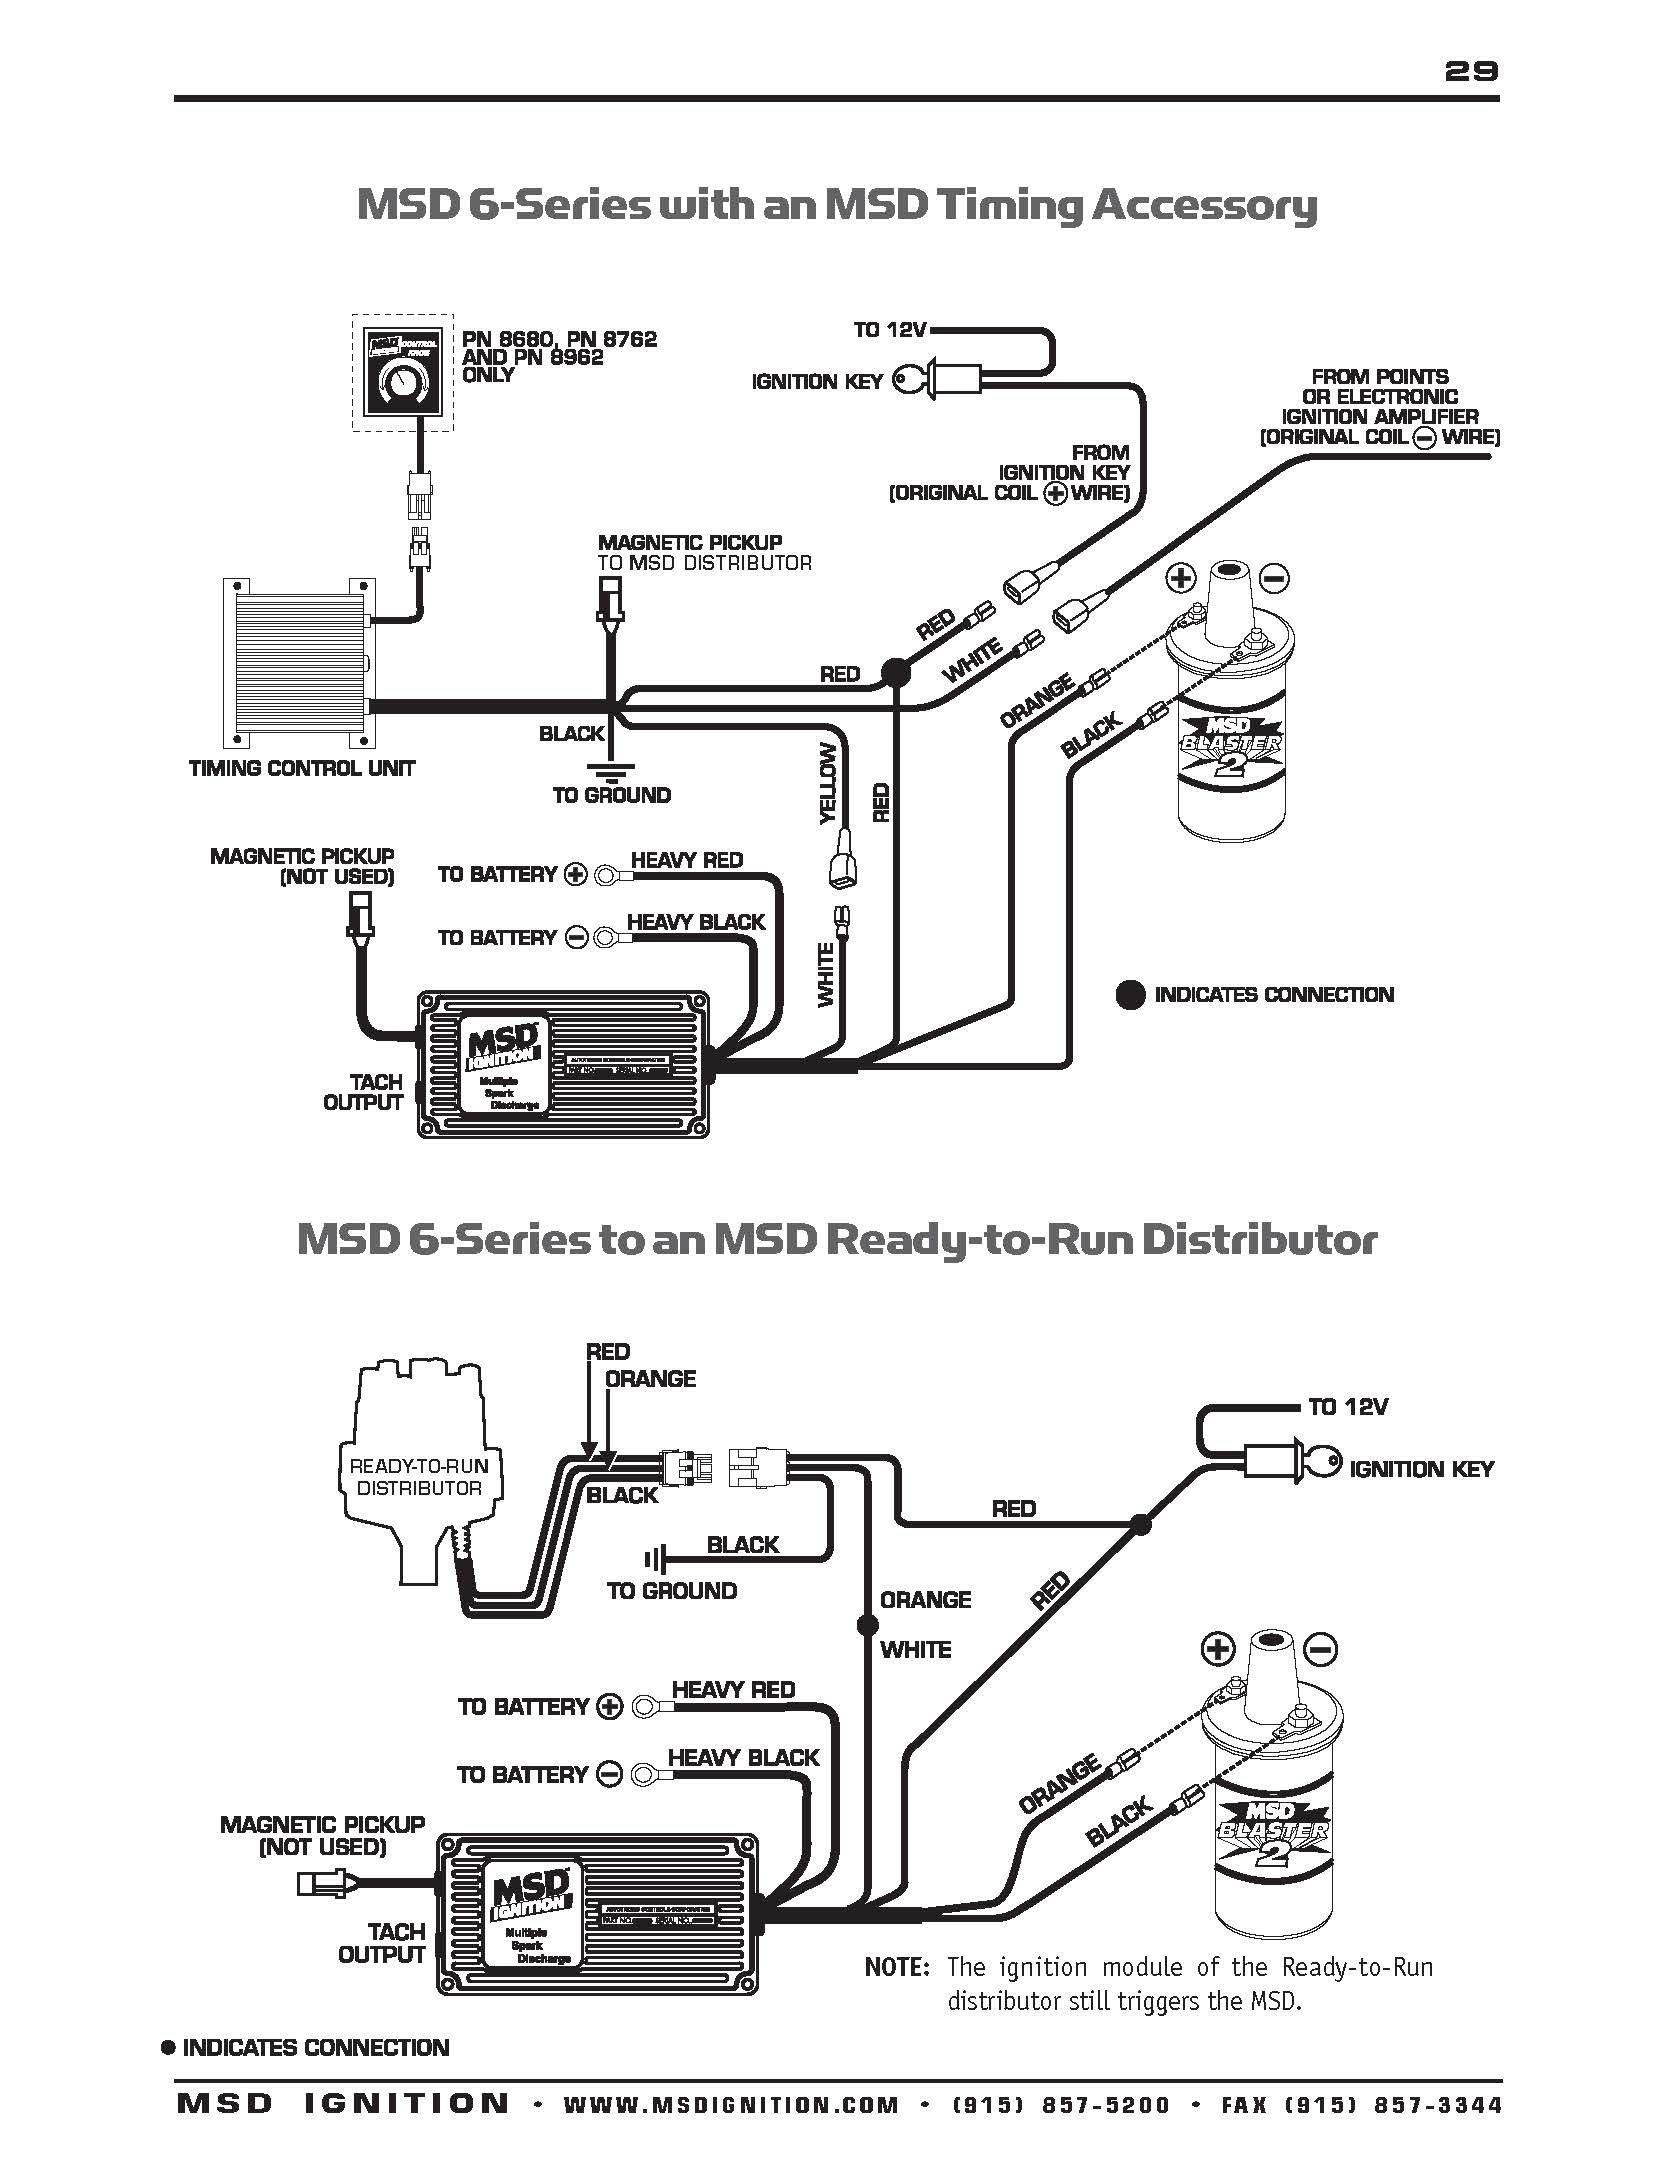 msd 6btm wiring diagram Download-Msd Ignition Wiring Diagram Best Msd 6btm Wiring Diagram Wiring Diagram 6-a